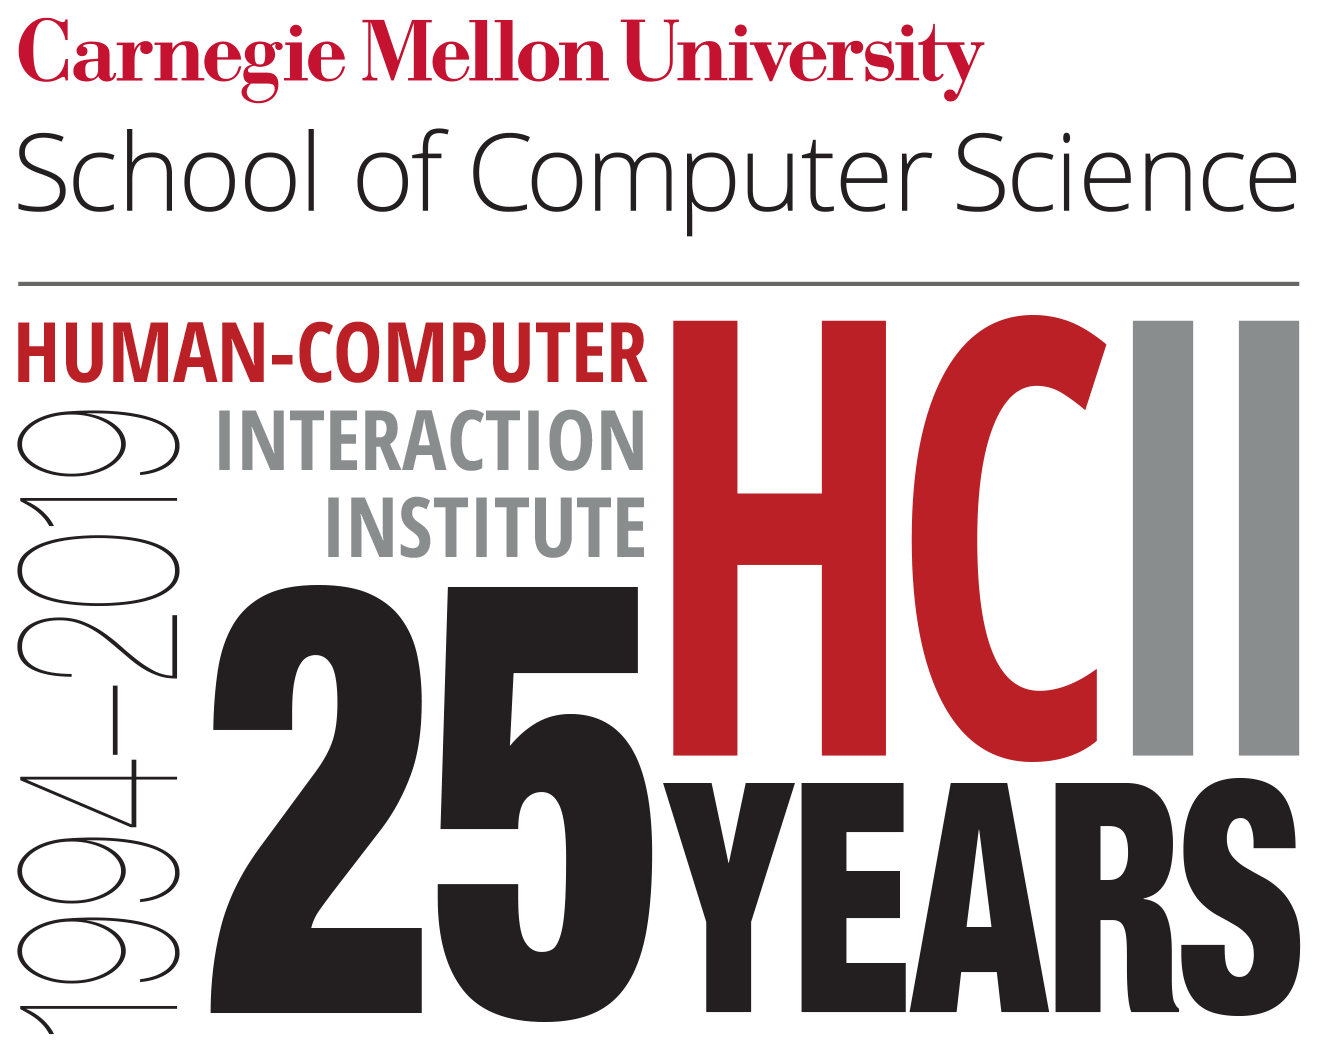 1994-2019 Human-Computer Interaction Institute is celebrating 25 years